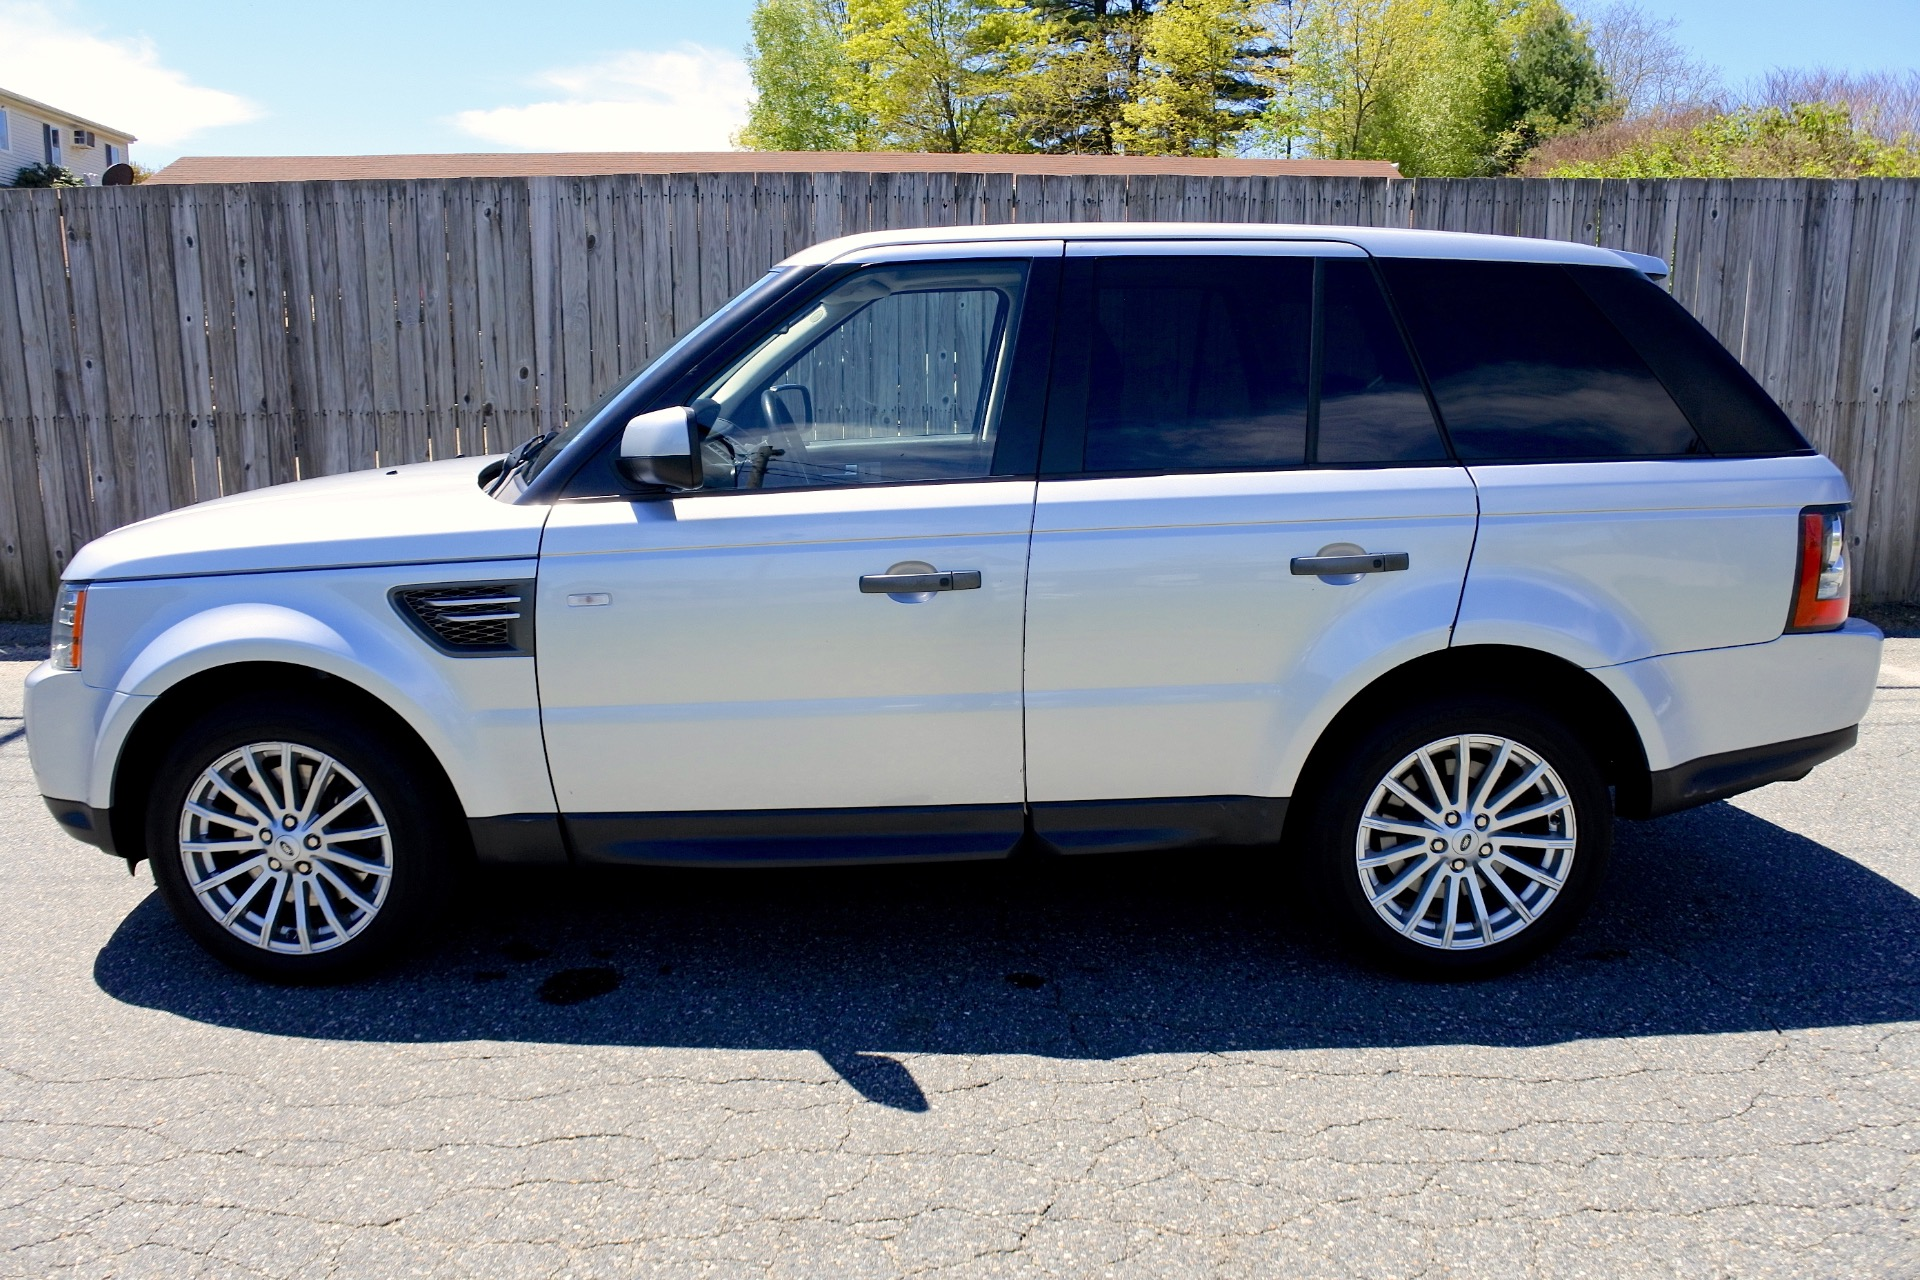 Used 2011 Land Rover Range Rover Sport HSE Used 2011 Land Rover Range Rover Sport HSE for sale  at Metro West Motorcars LLC in Shrewsbury MA 2